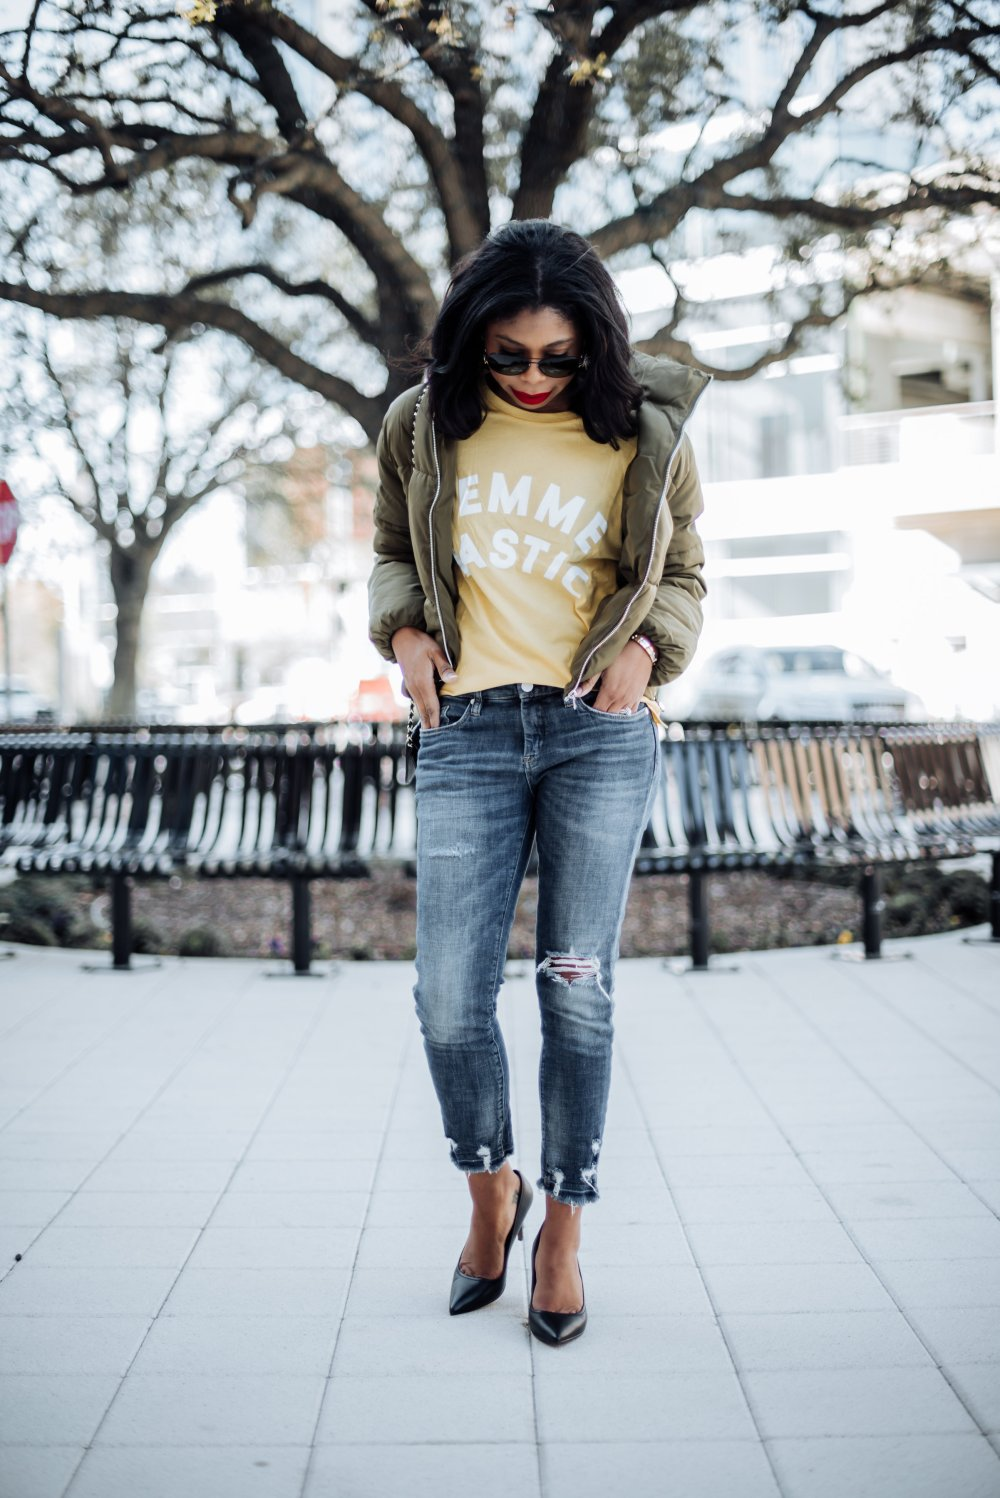 h&m graphic tee how to style feminist tee shirts dallas fashion blogger